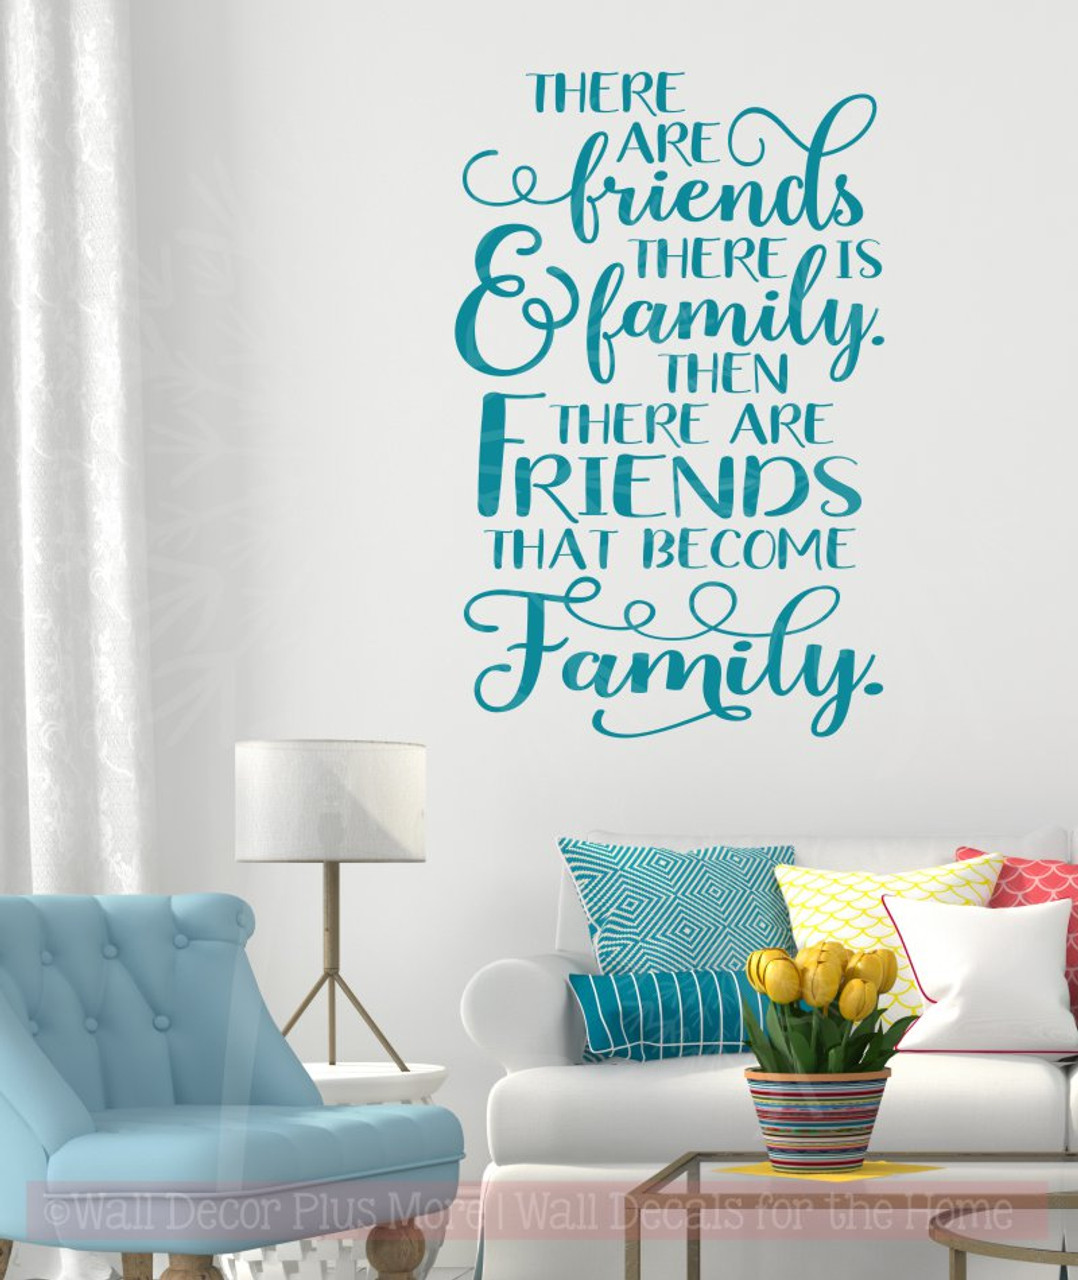 Elegant Friends Become Family Quotes Wall Decals Vinyl Lettering For Home Decor Teal